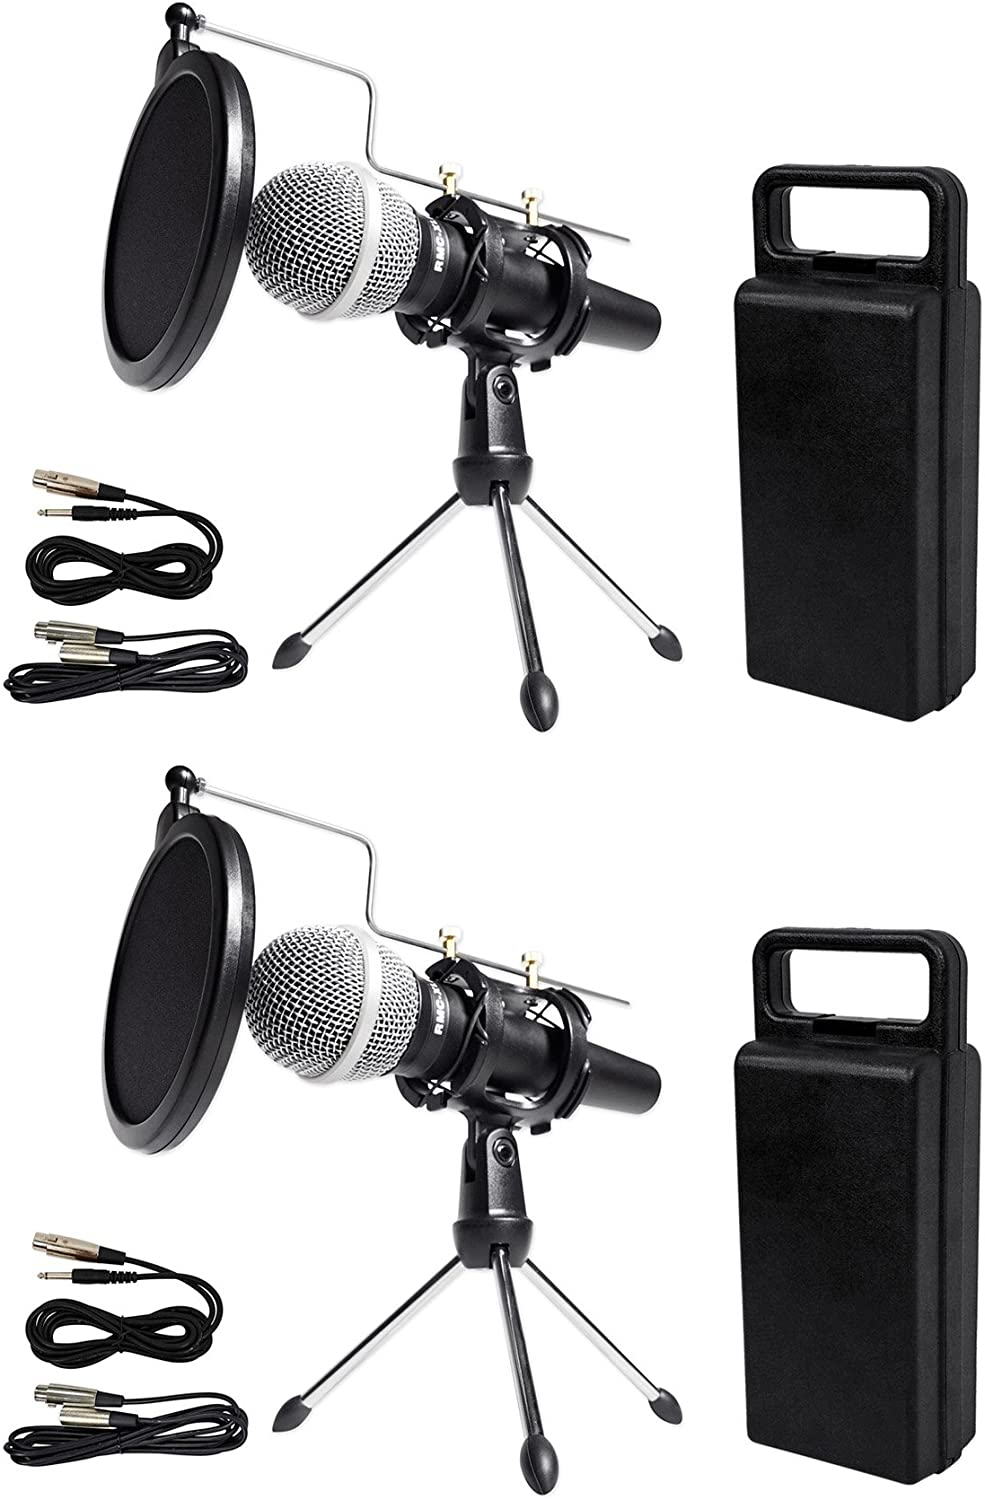 (2) Rockville Dynamic Podcasting Podcast Microphones+Stands+Pop Filters+Cables 71VIick2o3L